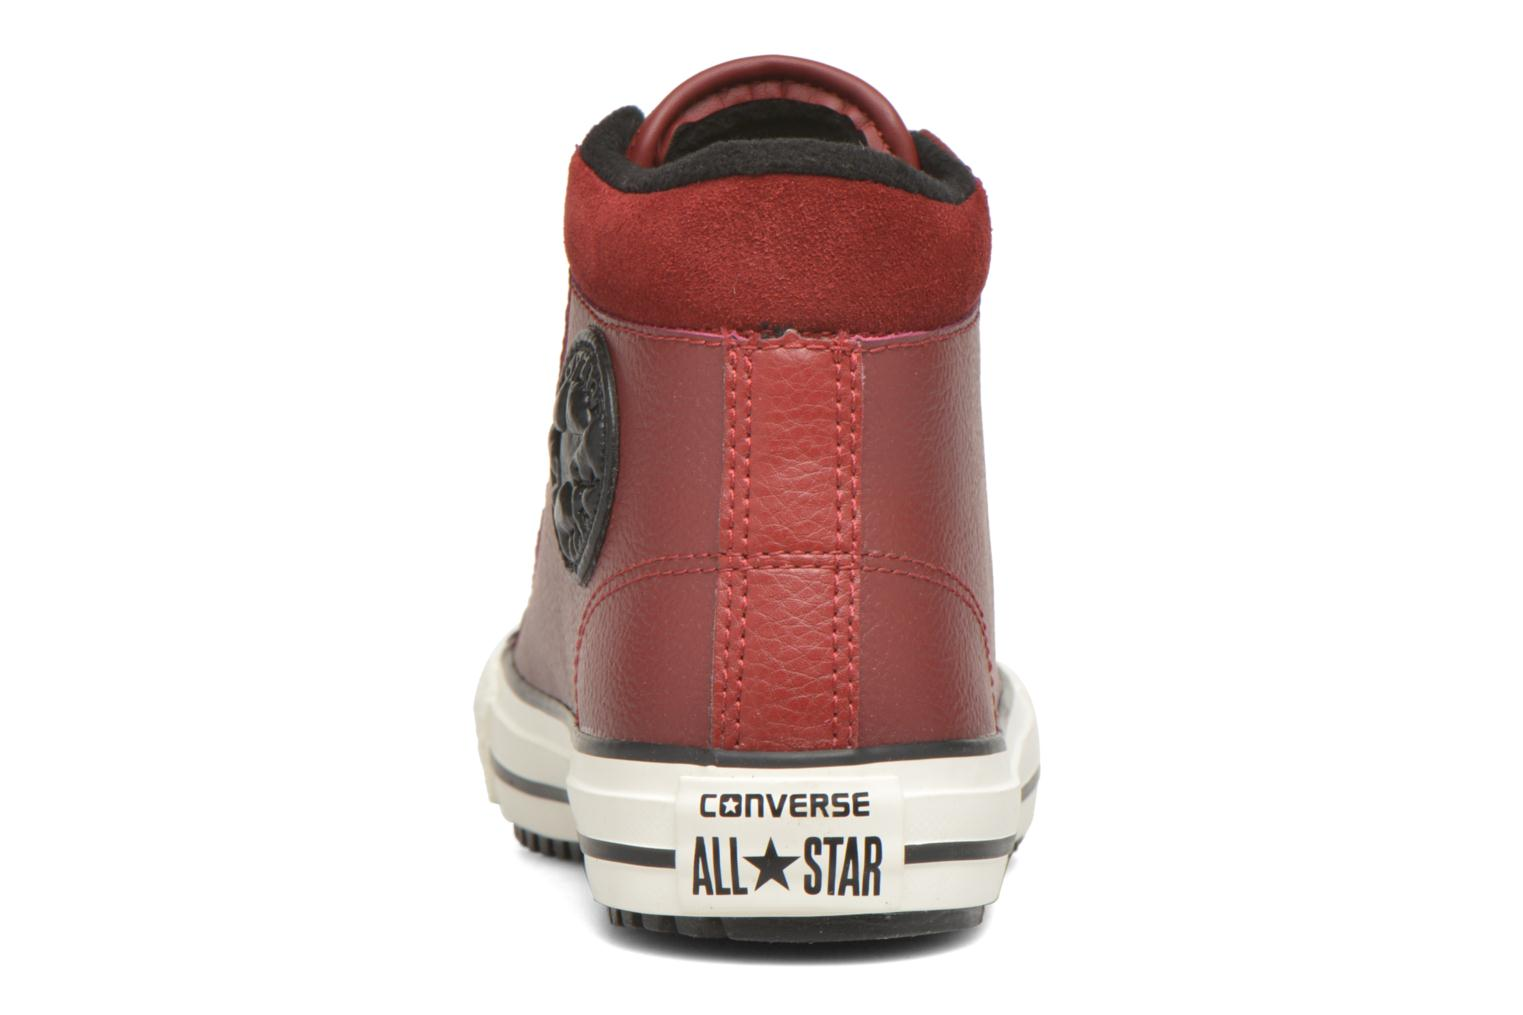 Chuck Taylor All Star Converse Boot Hi Red Block/Black